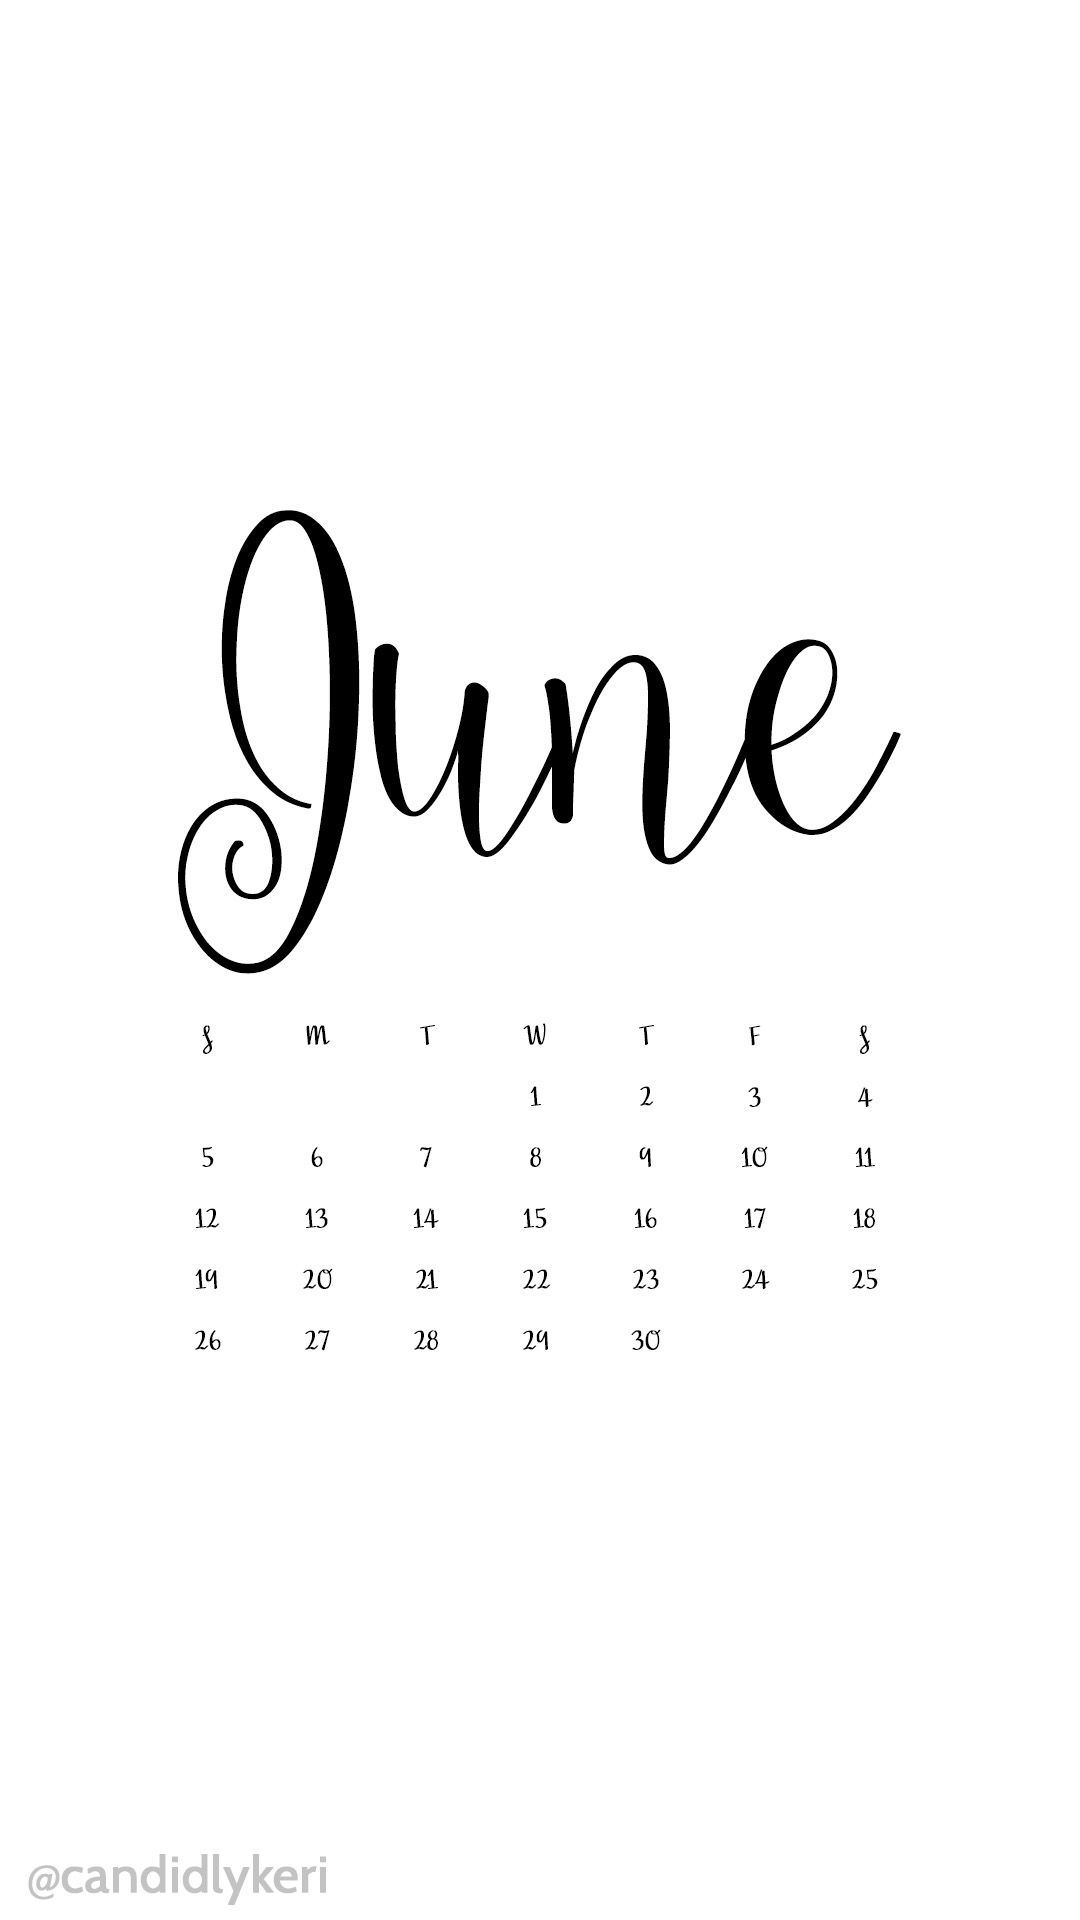 White and black script June 2016 calendar wallpaper free